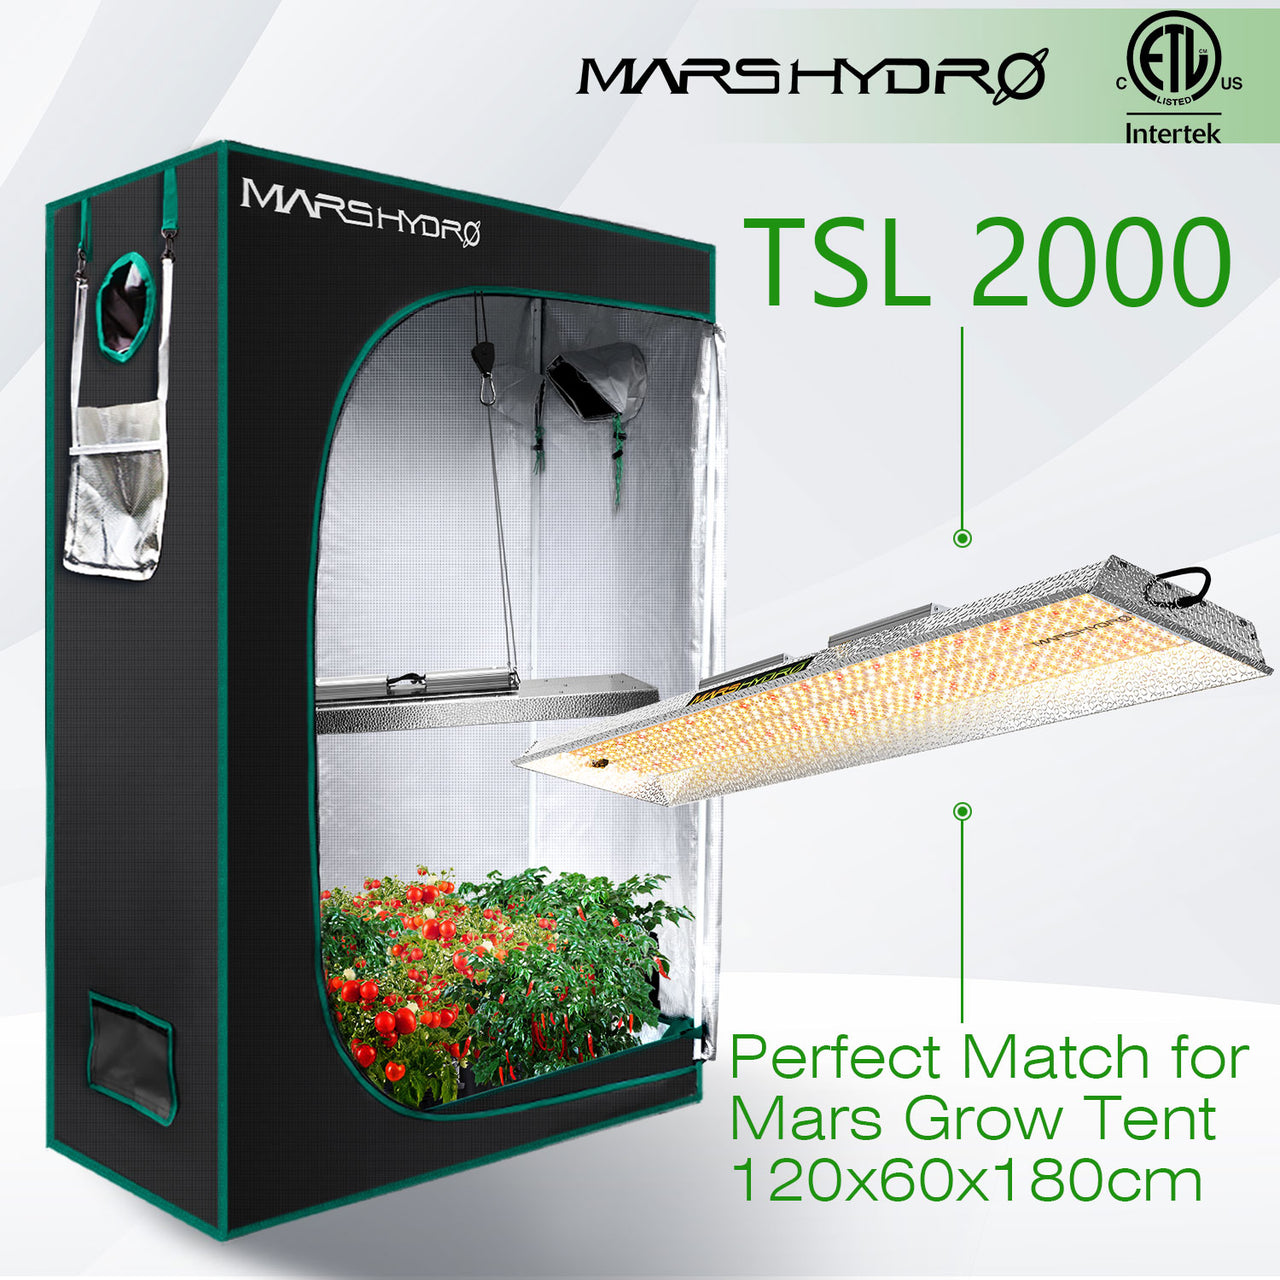 MARS HYDRO TSL2000 Grow Light